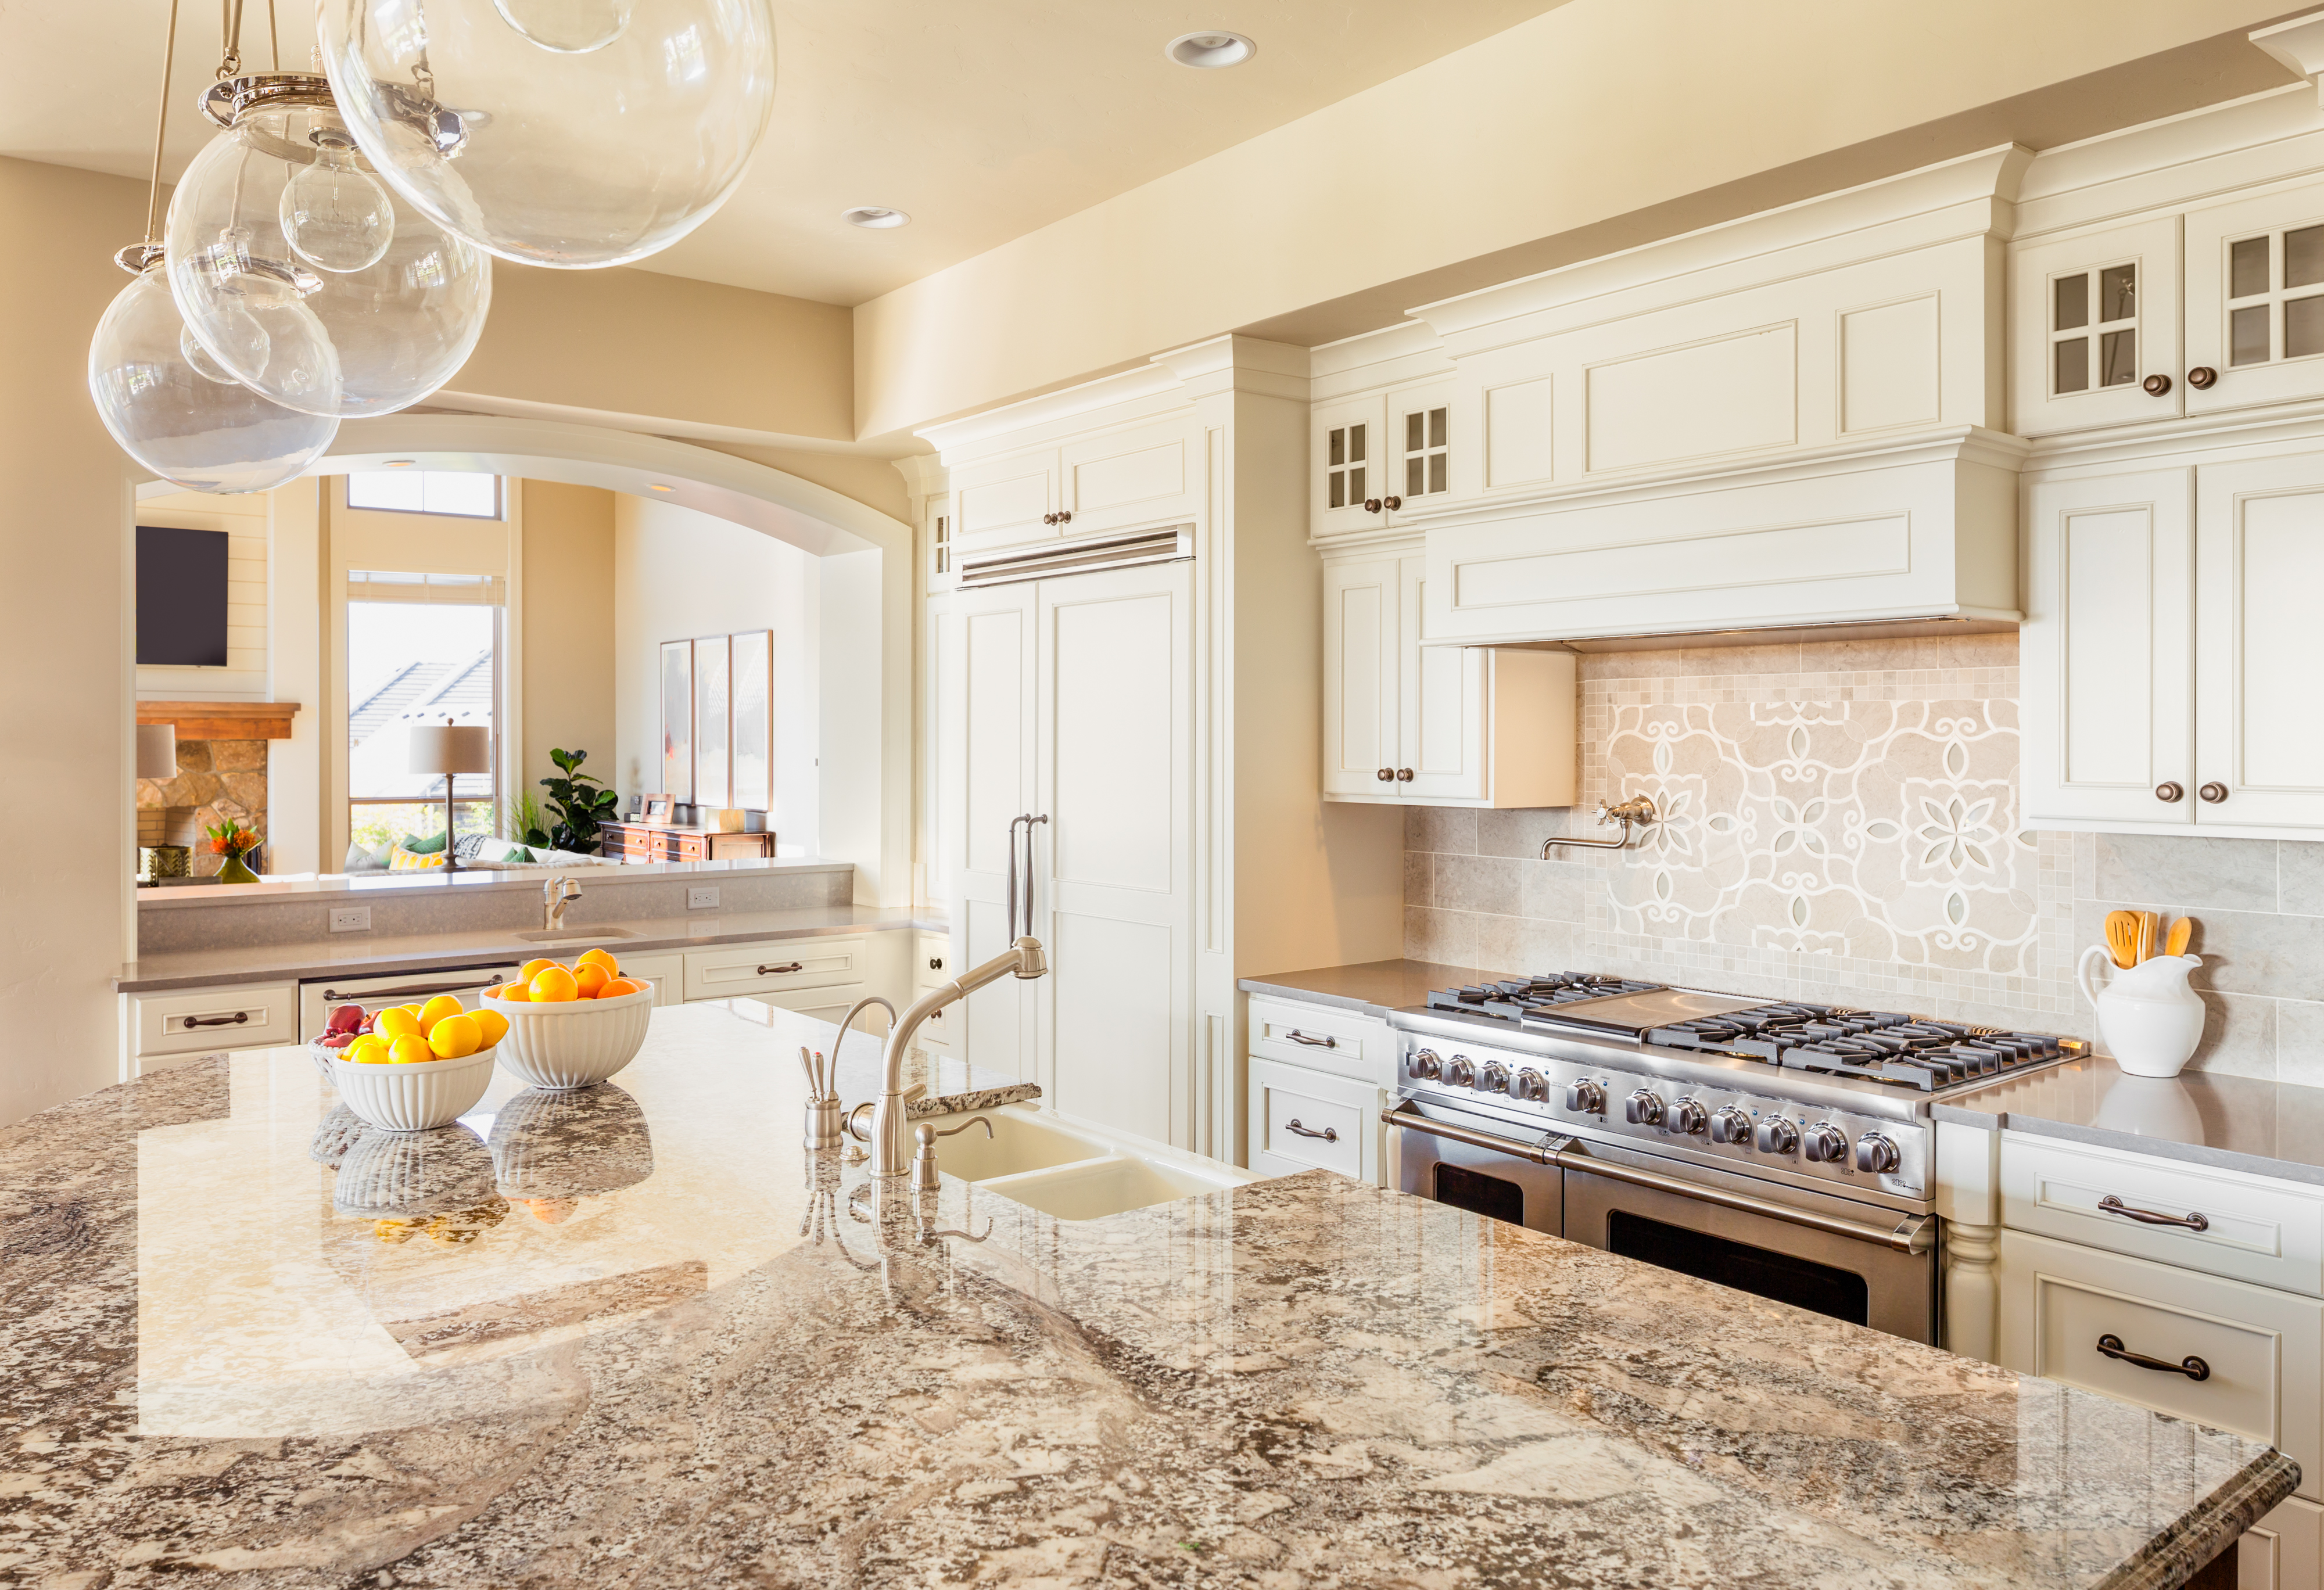 Marble vs Granite: How to Choose? - BT Architectural Stone